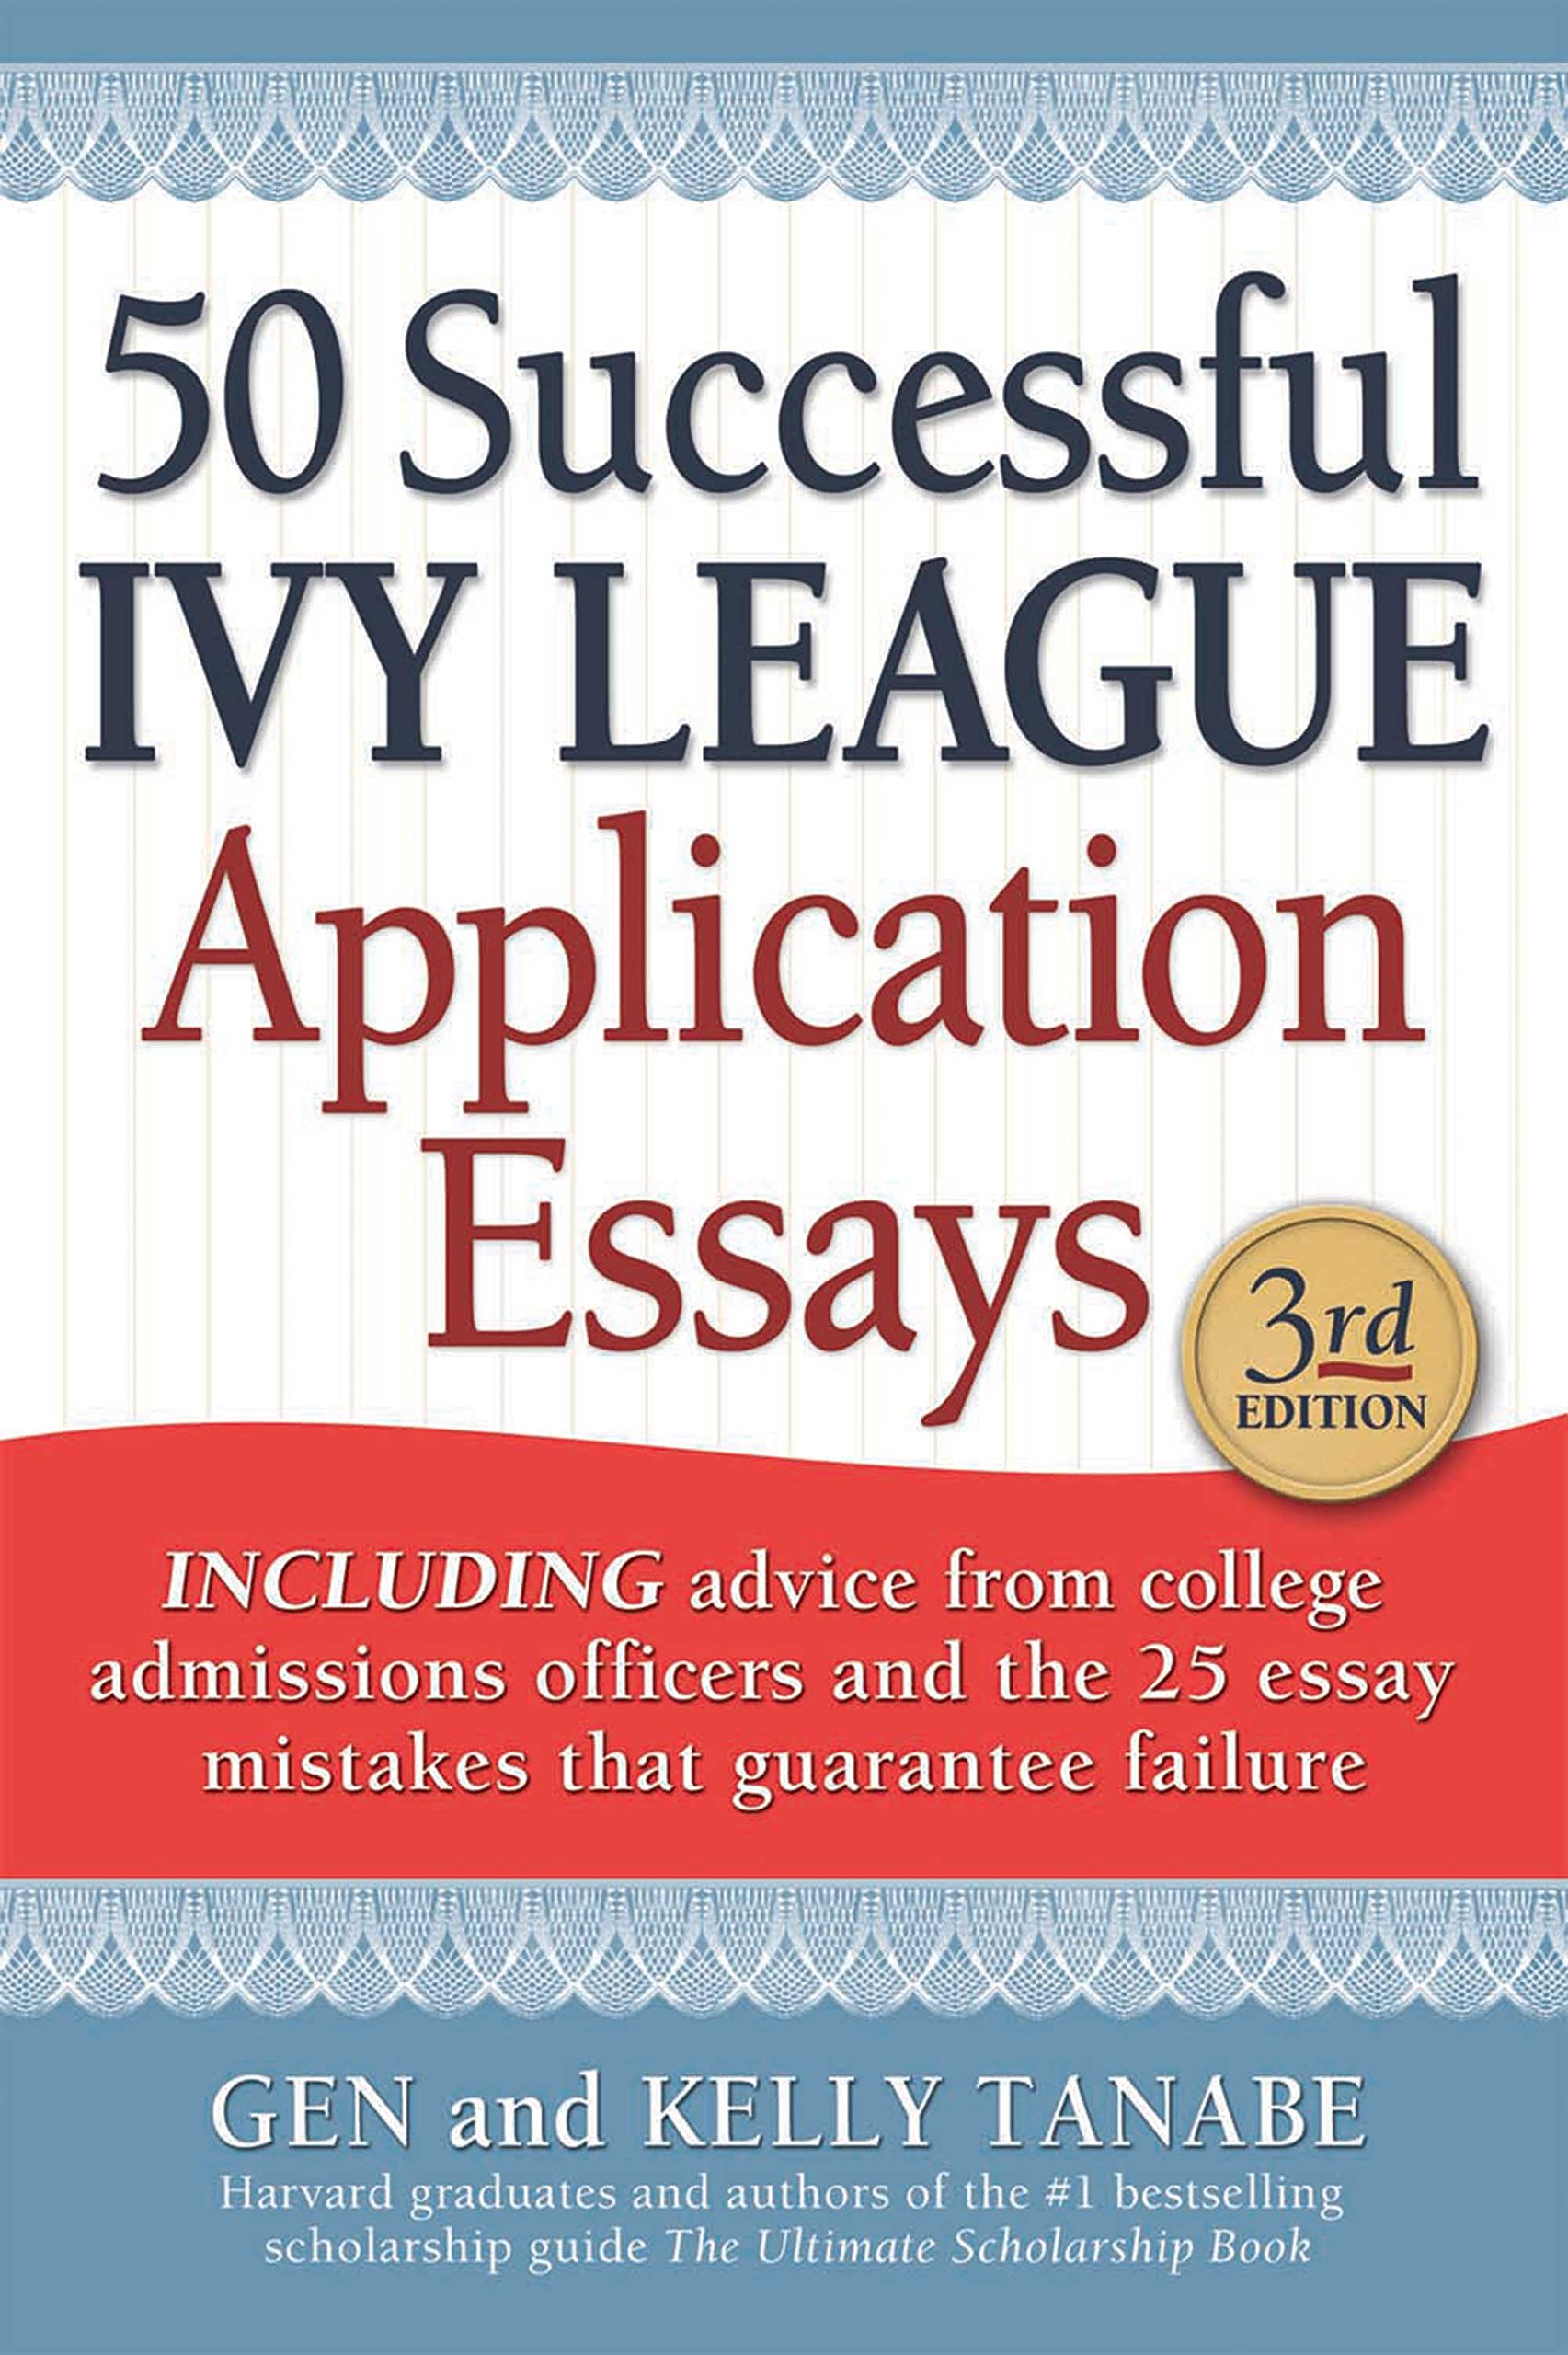 Help on college essay costco ivy league